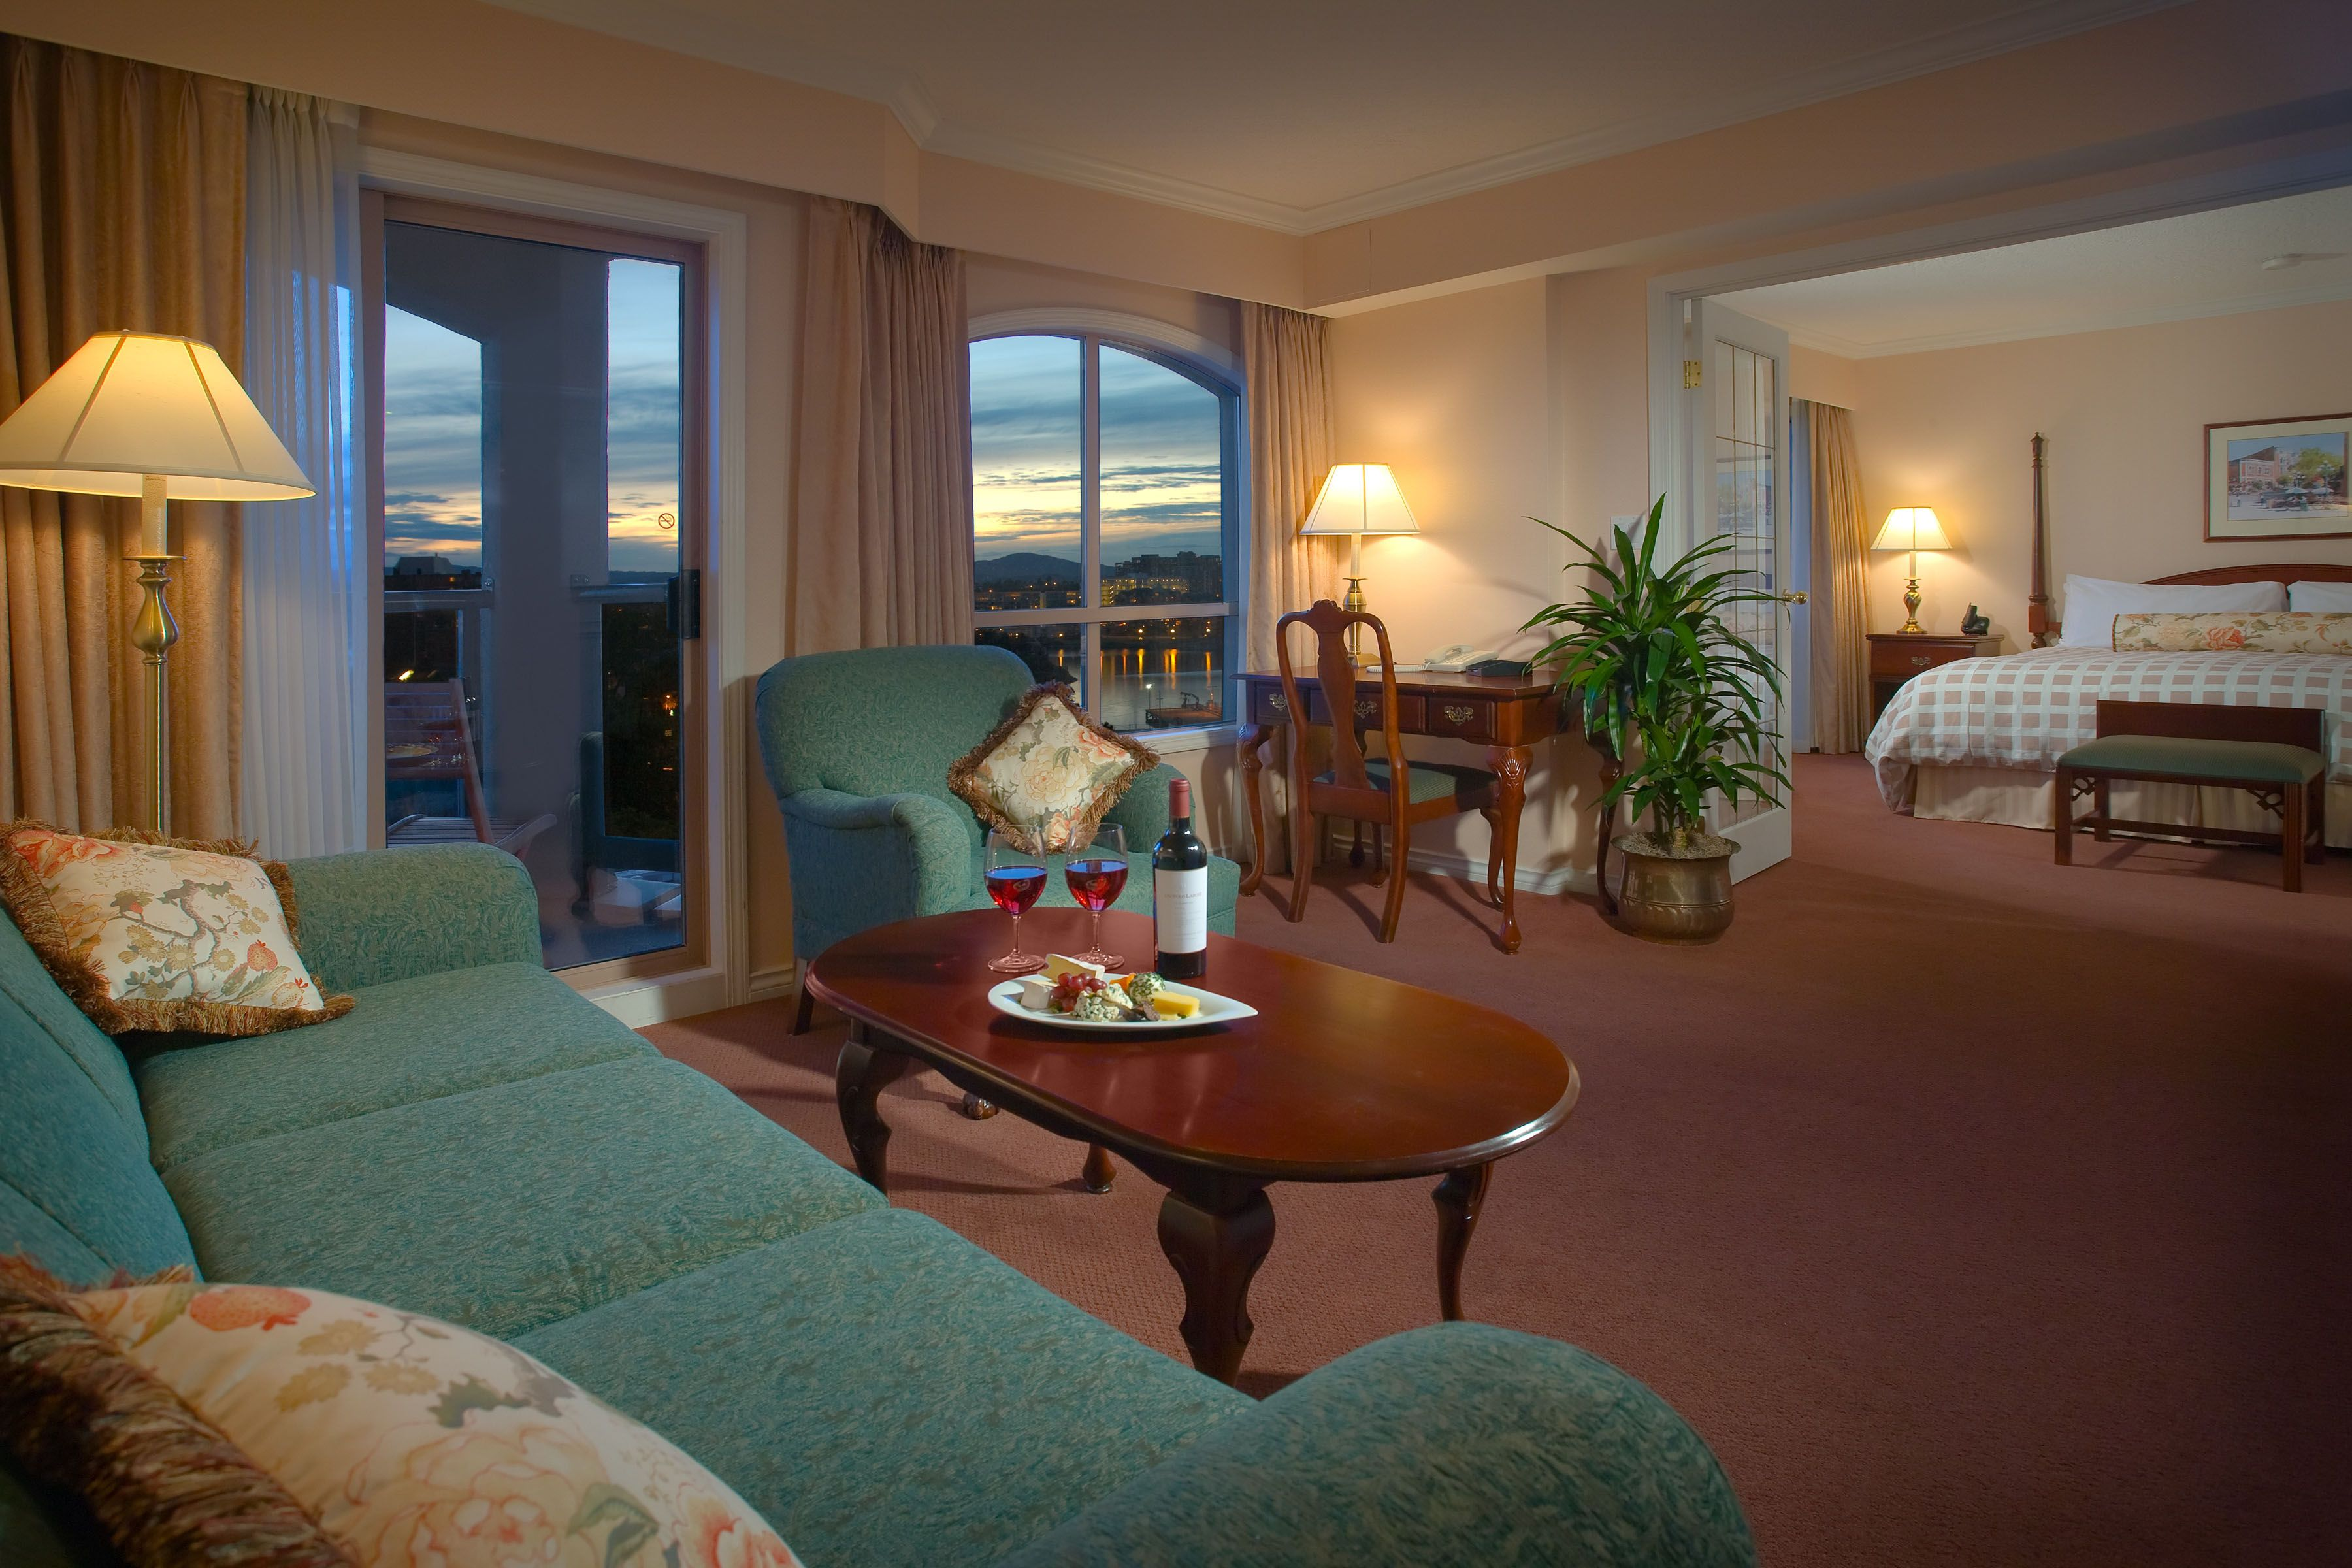 Pacific OneBedroom Suite at the Hotel Grand Pacific in